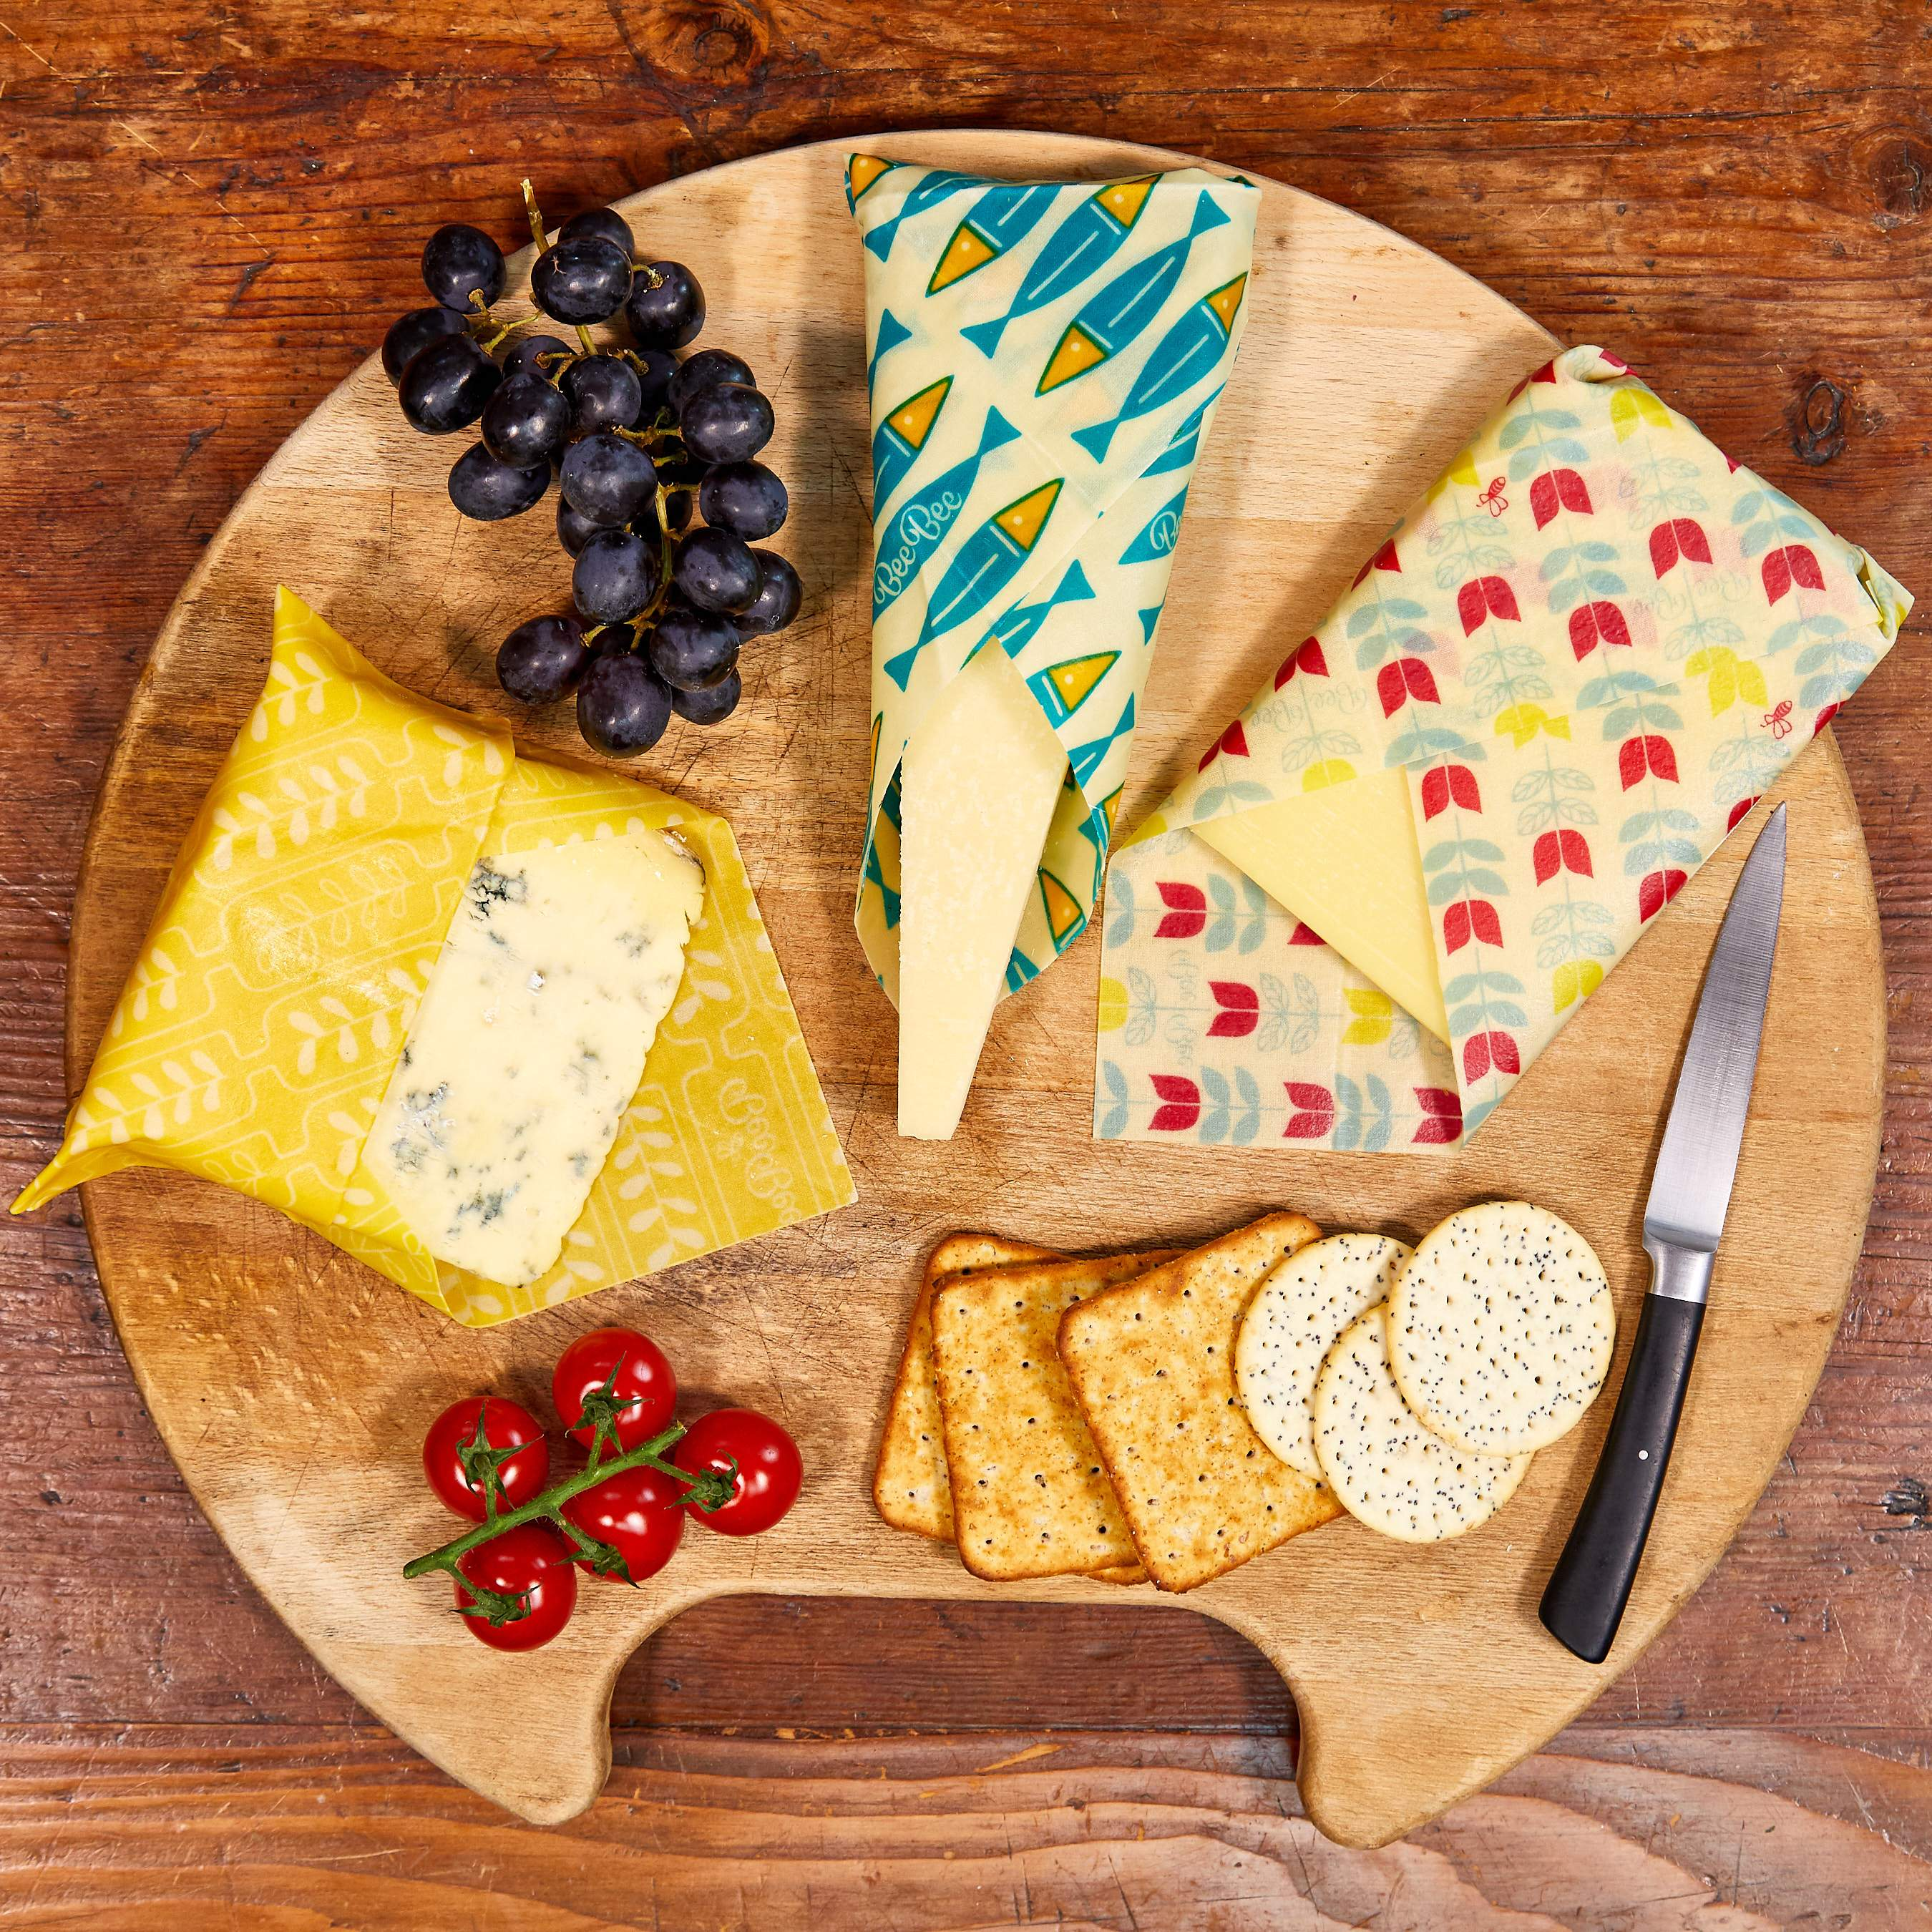 The_Cheese_Collection-_BeeBee_Wraps-_SS19-_Beeswax_Wraps-_Plastic_Free_Organic_Cotton_Clingfilm_Alternative-_BEE3MCOL01_3